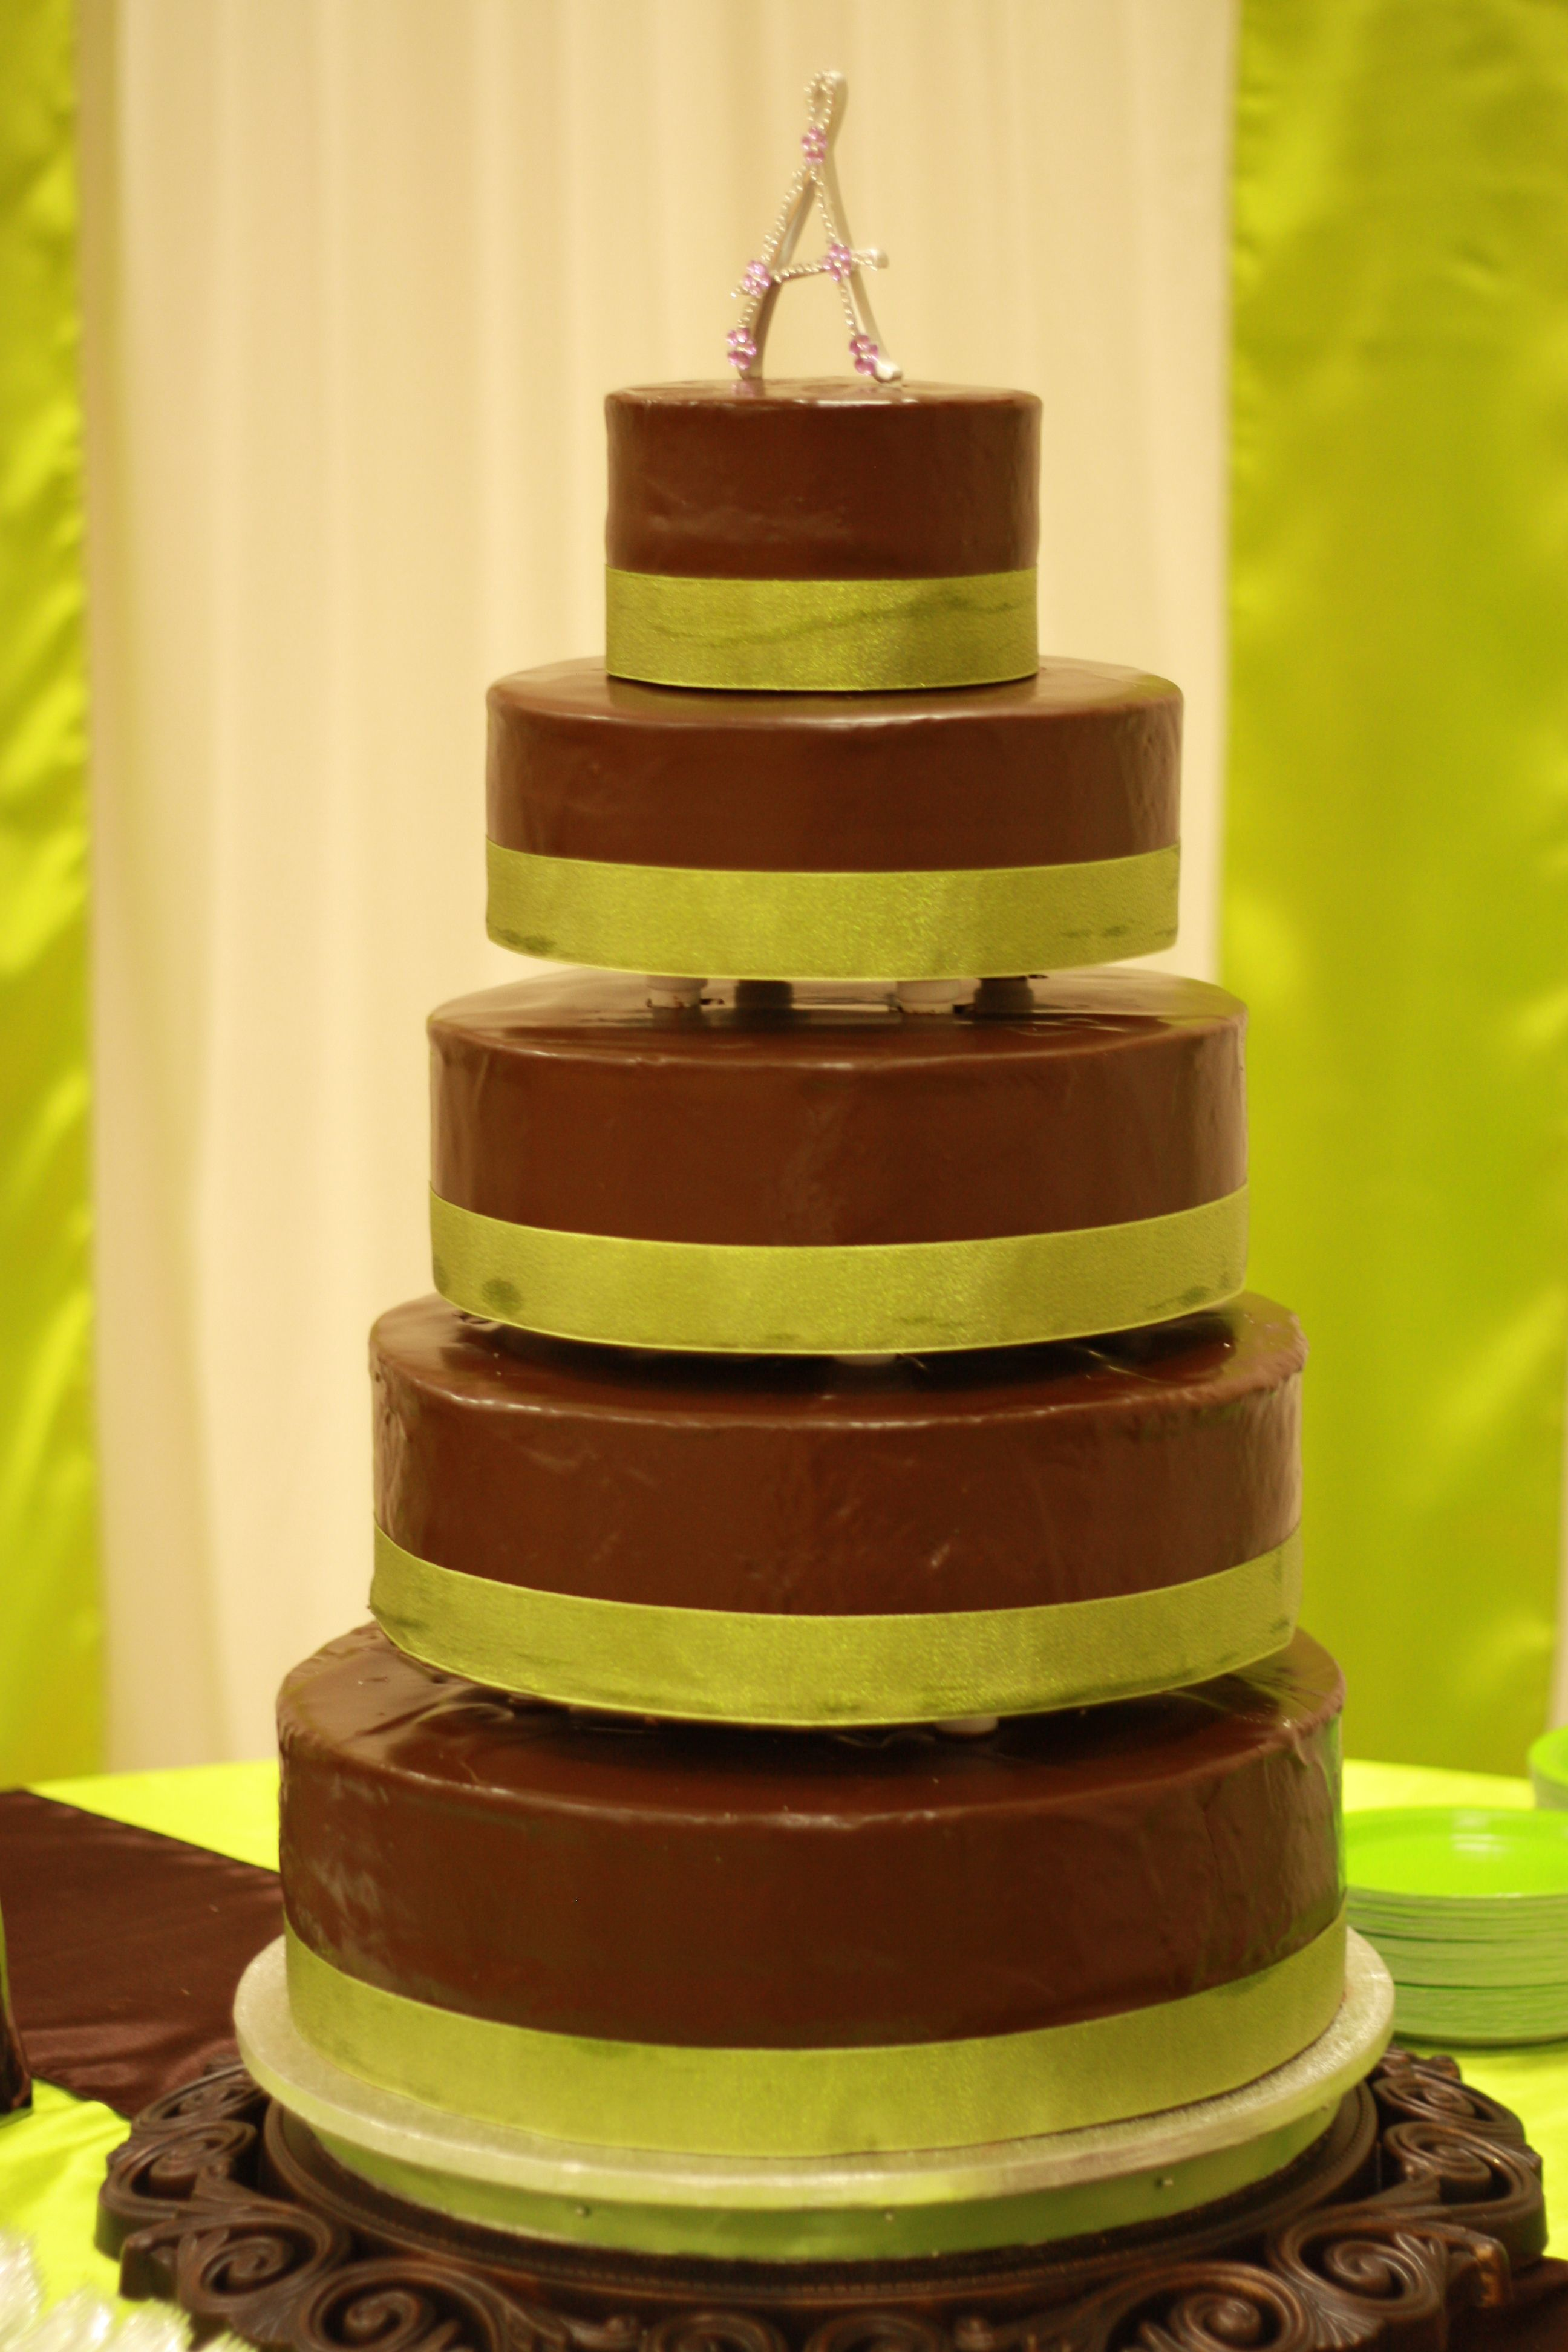 I loved my cake! It was perfect! No fondant, just a chocolate cover ...